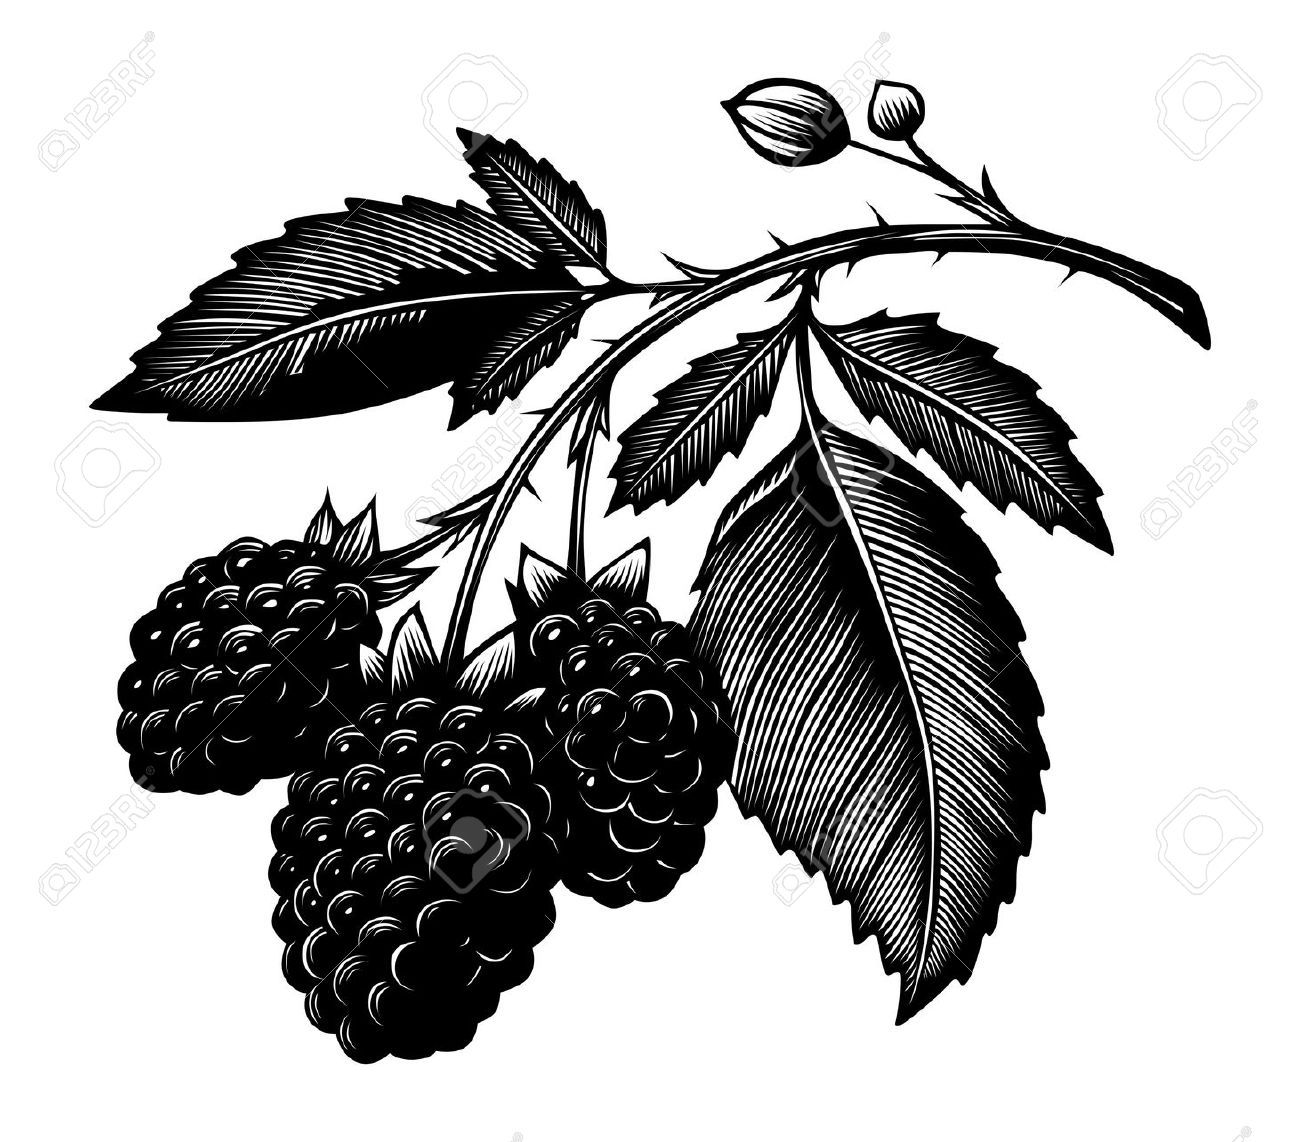 Oblong raspberry. Cliparts stock vector and